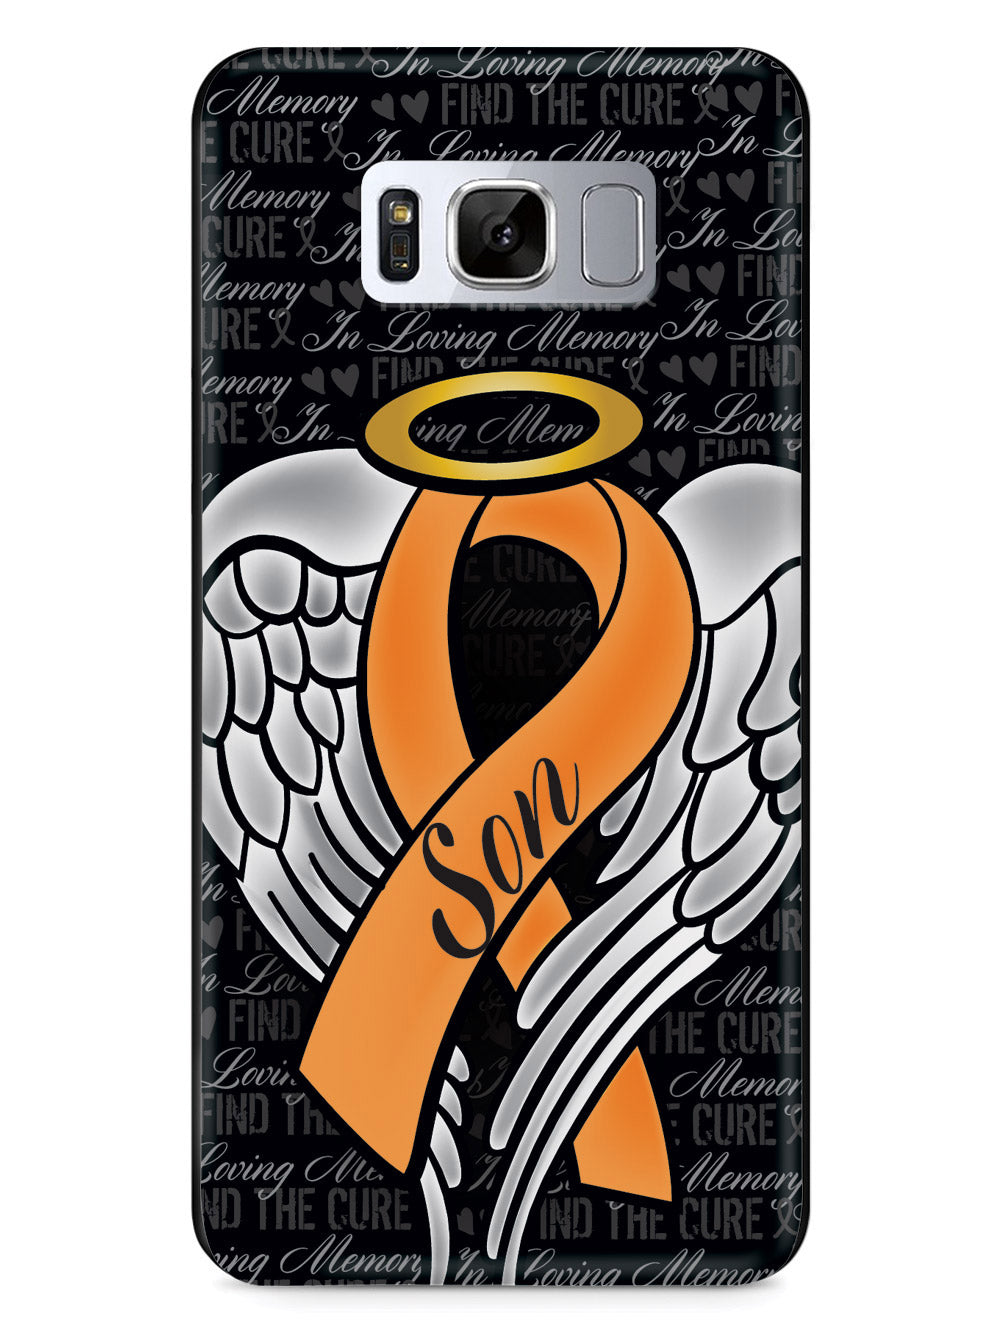 In Loving Memory of My Son - Orange Ribbon Case